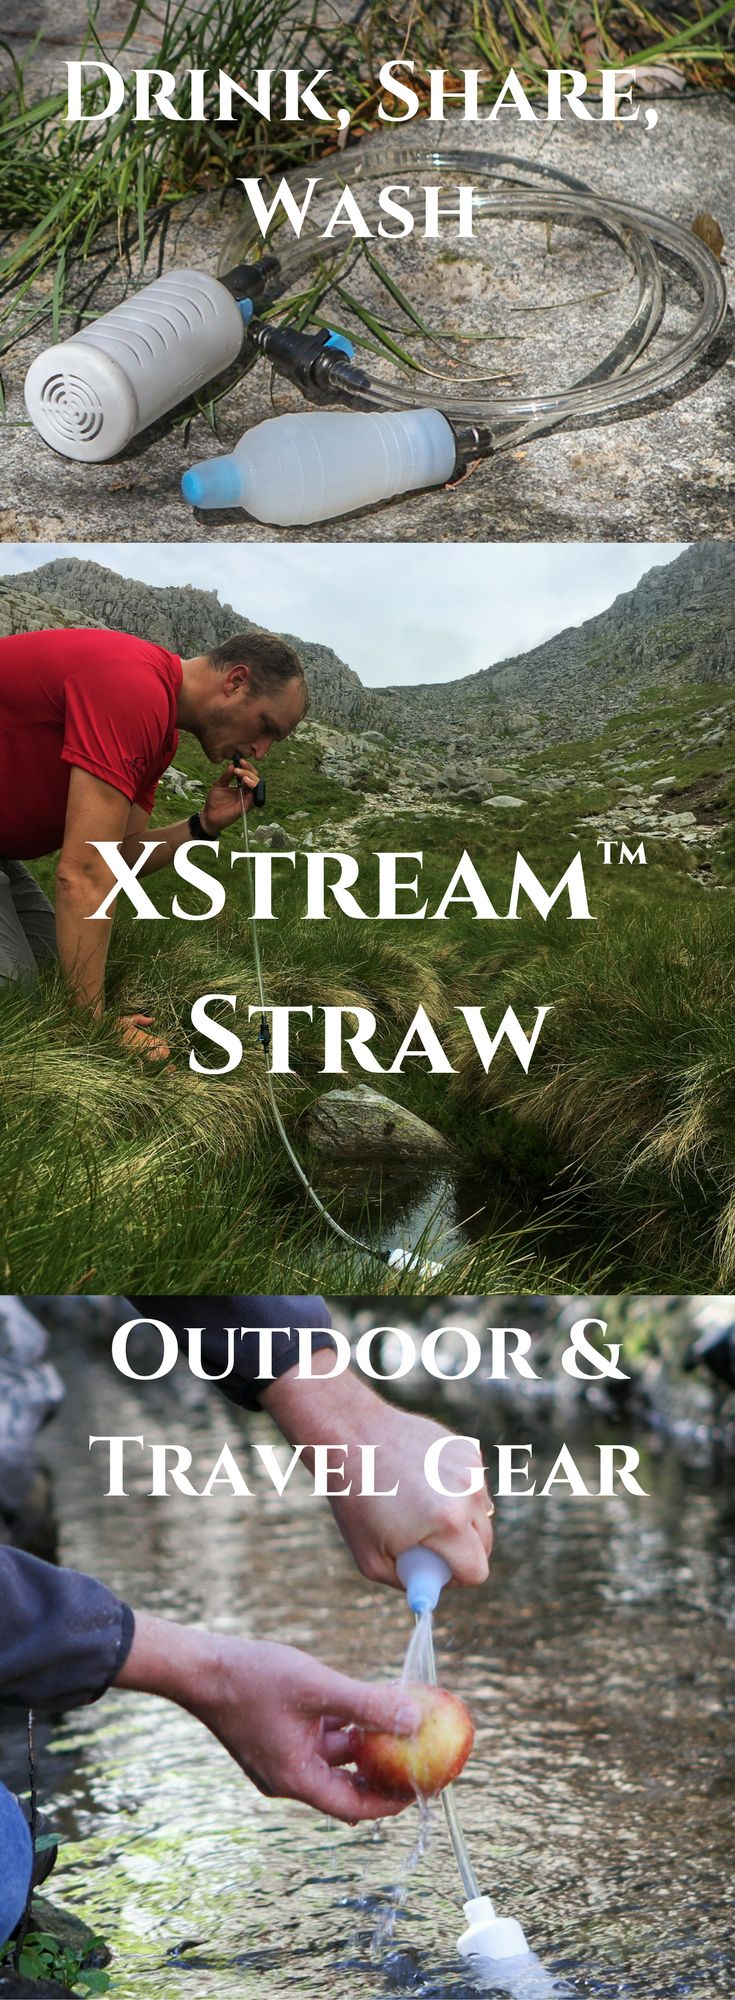 The best gear for all your outdoor and travel adventures. We've answered all your questions about the best water filter straw. Check this out and see why it's time to get XStream™